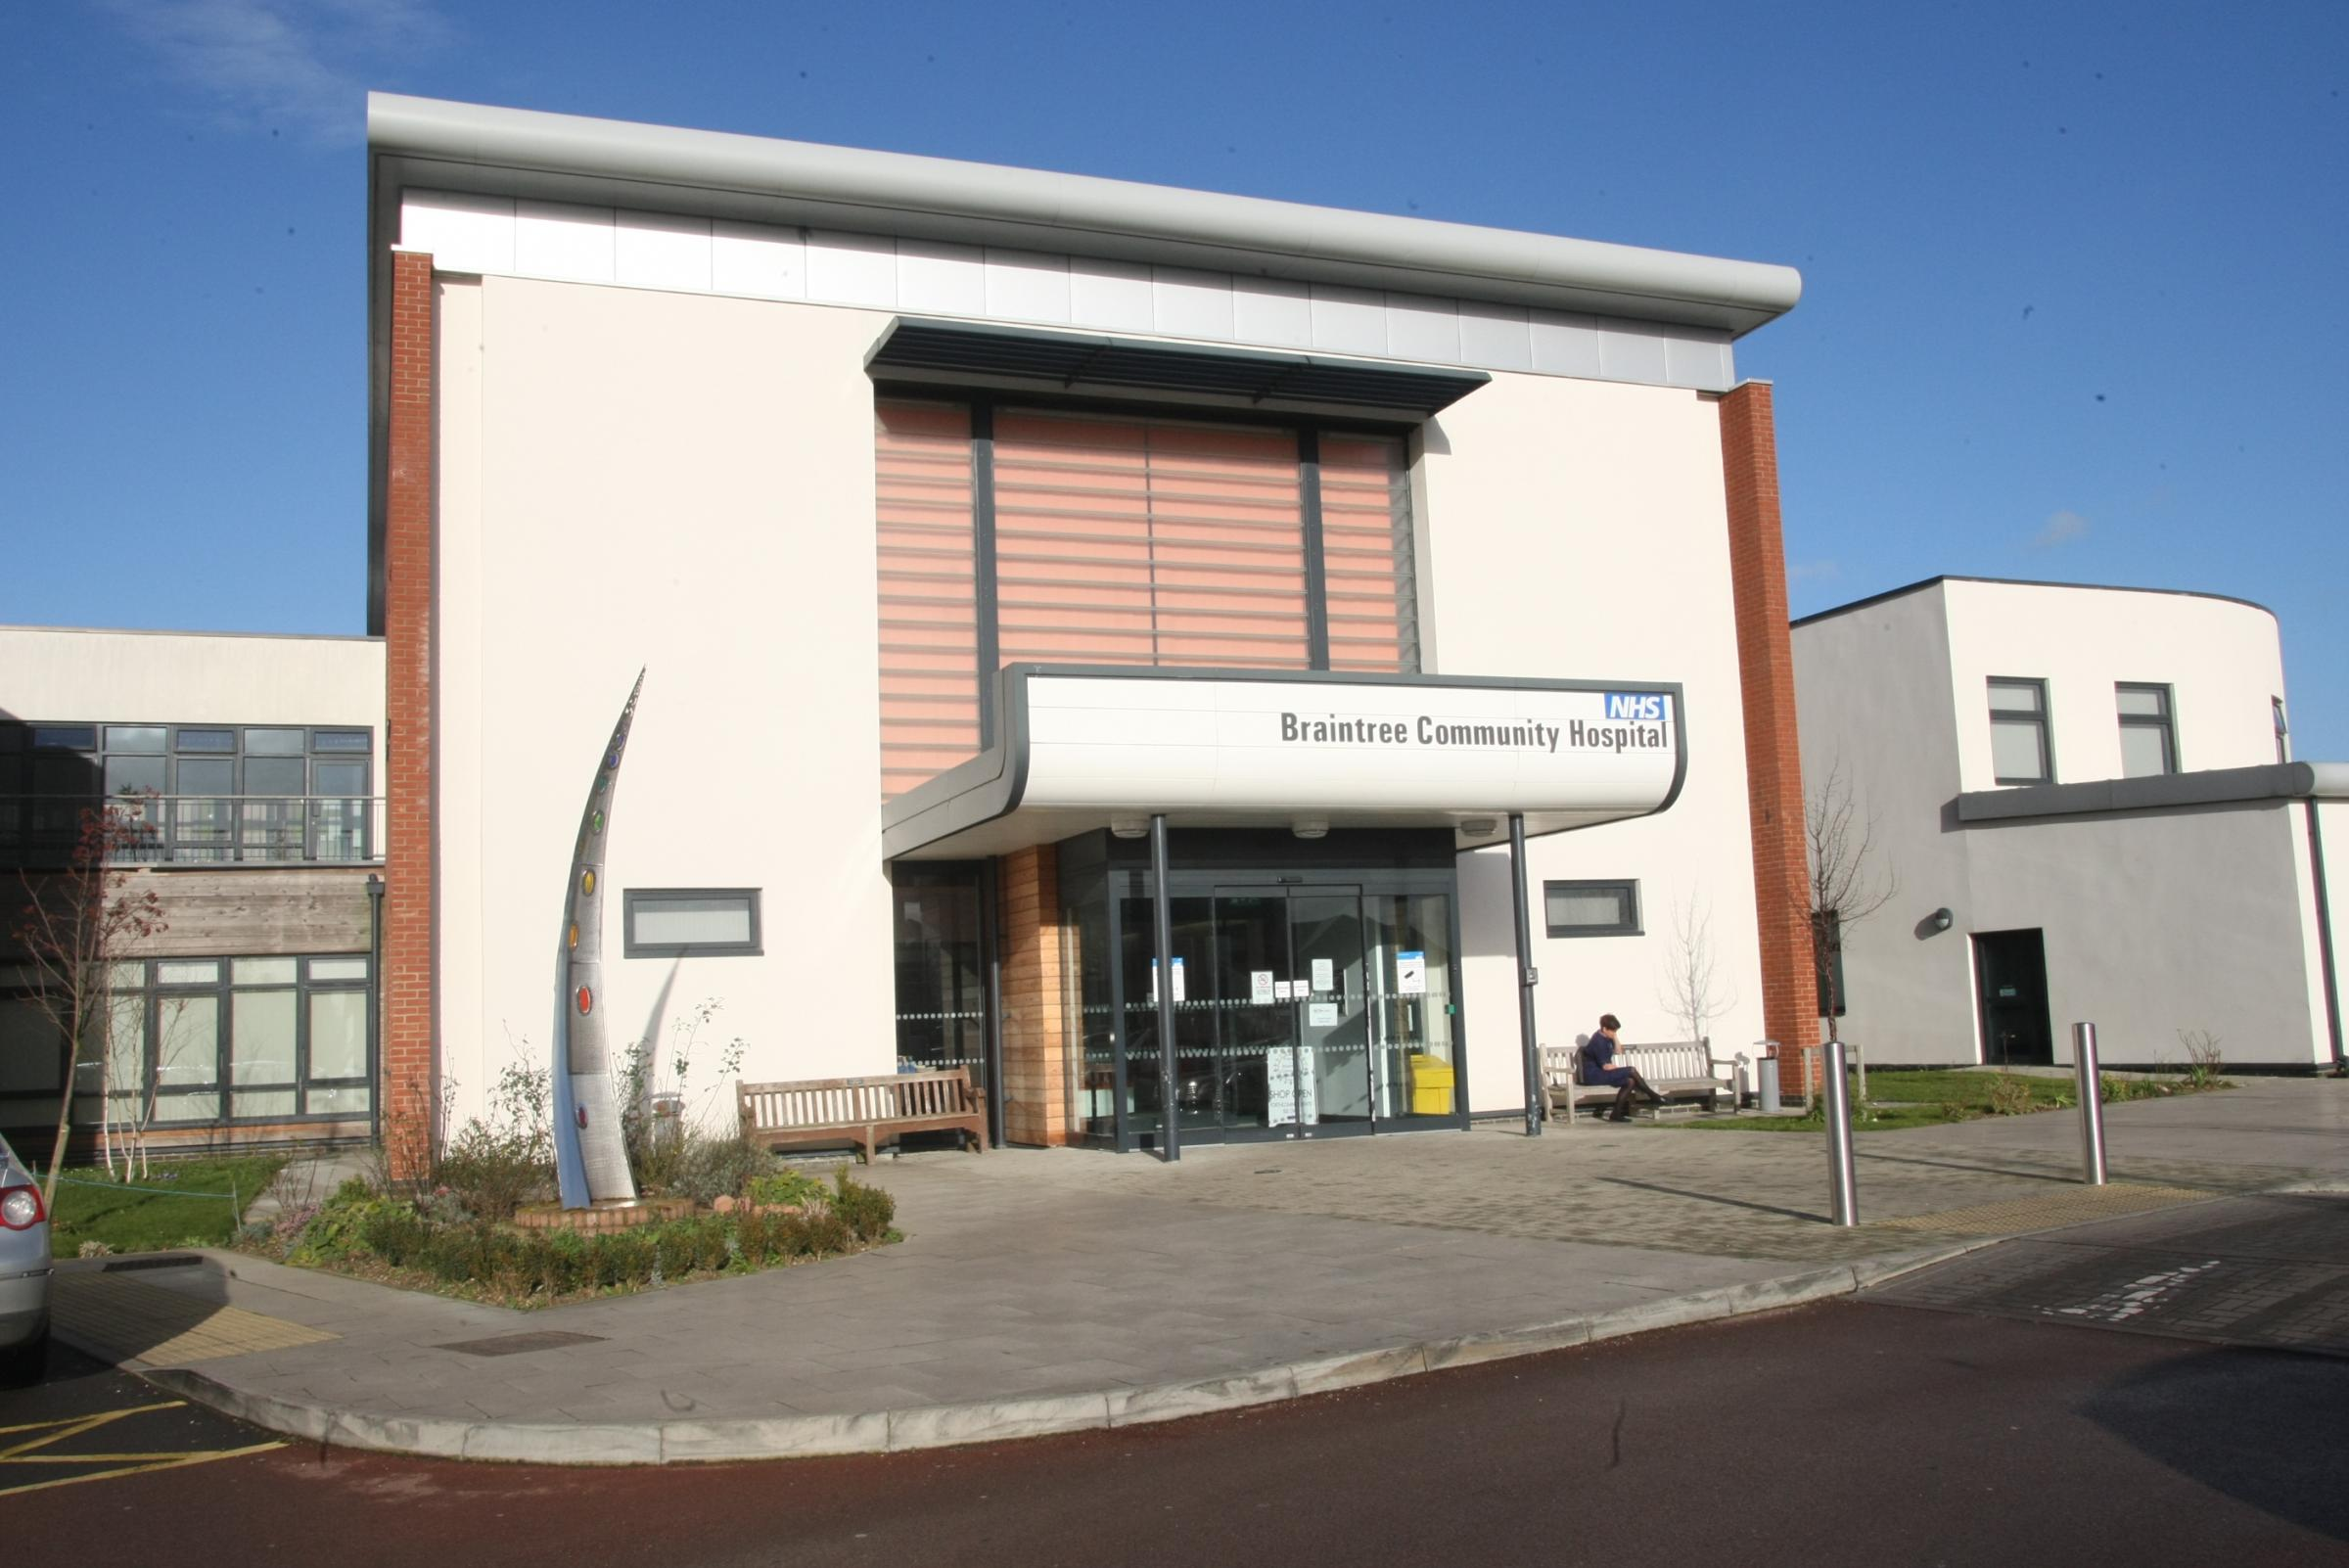 PROPOSALS: A public meeting will discuss changes to Braintree Community Hospital